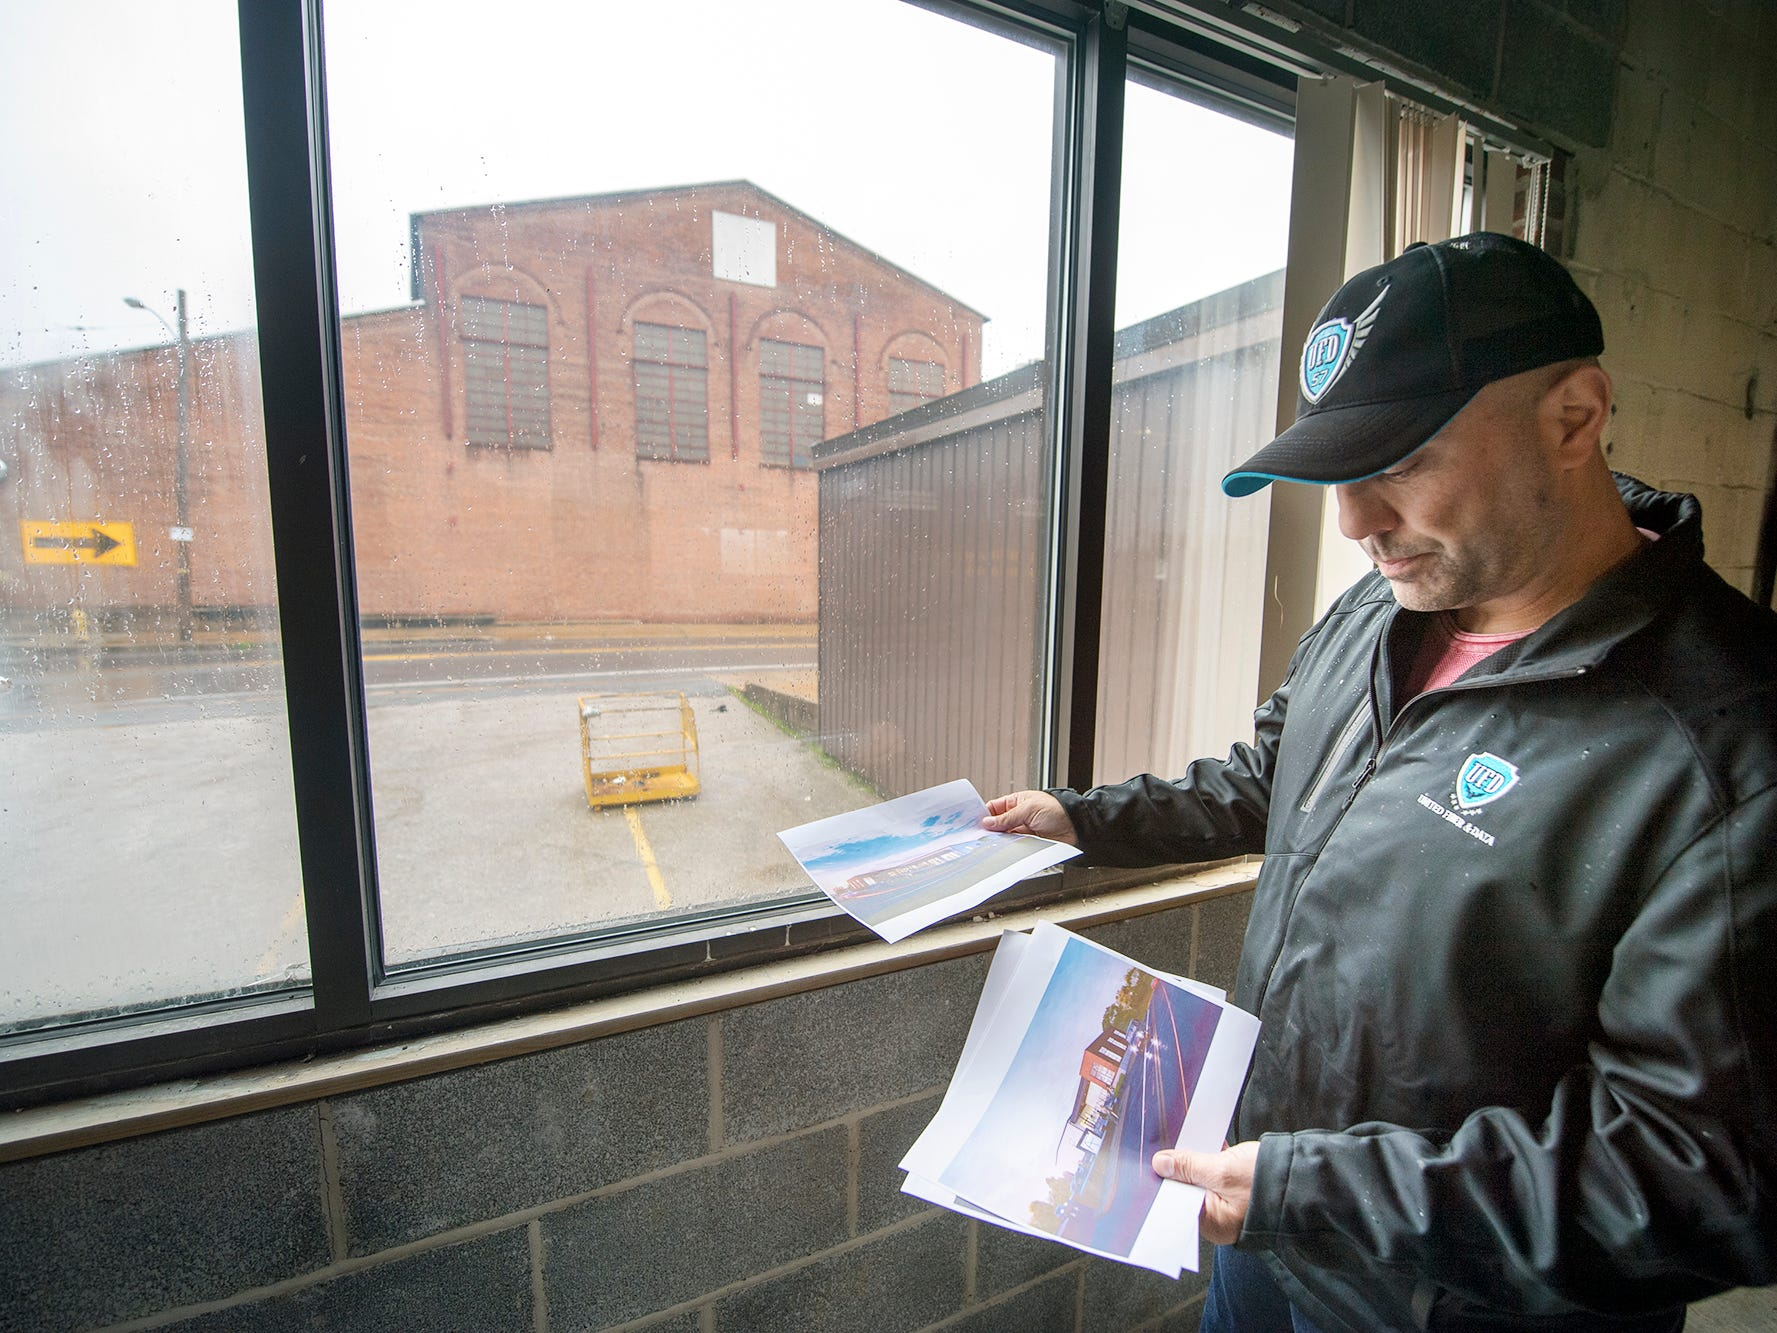 Bill Hynes, CEO and founder of UFD, looks over artist renditions in a recently gutted building in the former Metso complex. In the background, is one of the buildings that is most visible when entering York from Loucks Mill Road.